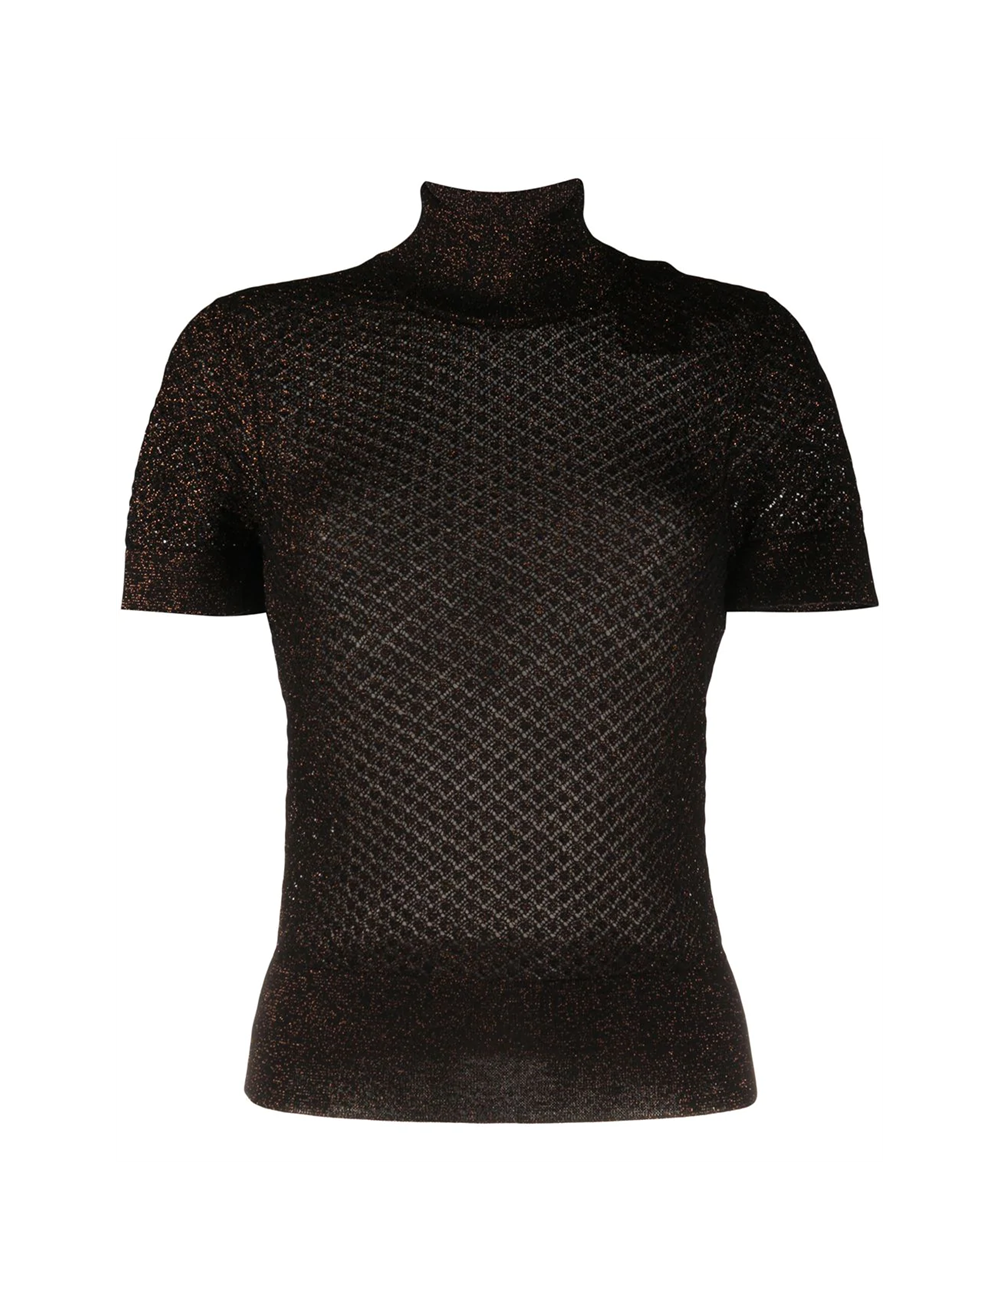 Openwork knit sweater Dolce Gabbana - BIG BOSS MEGEVE